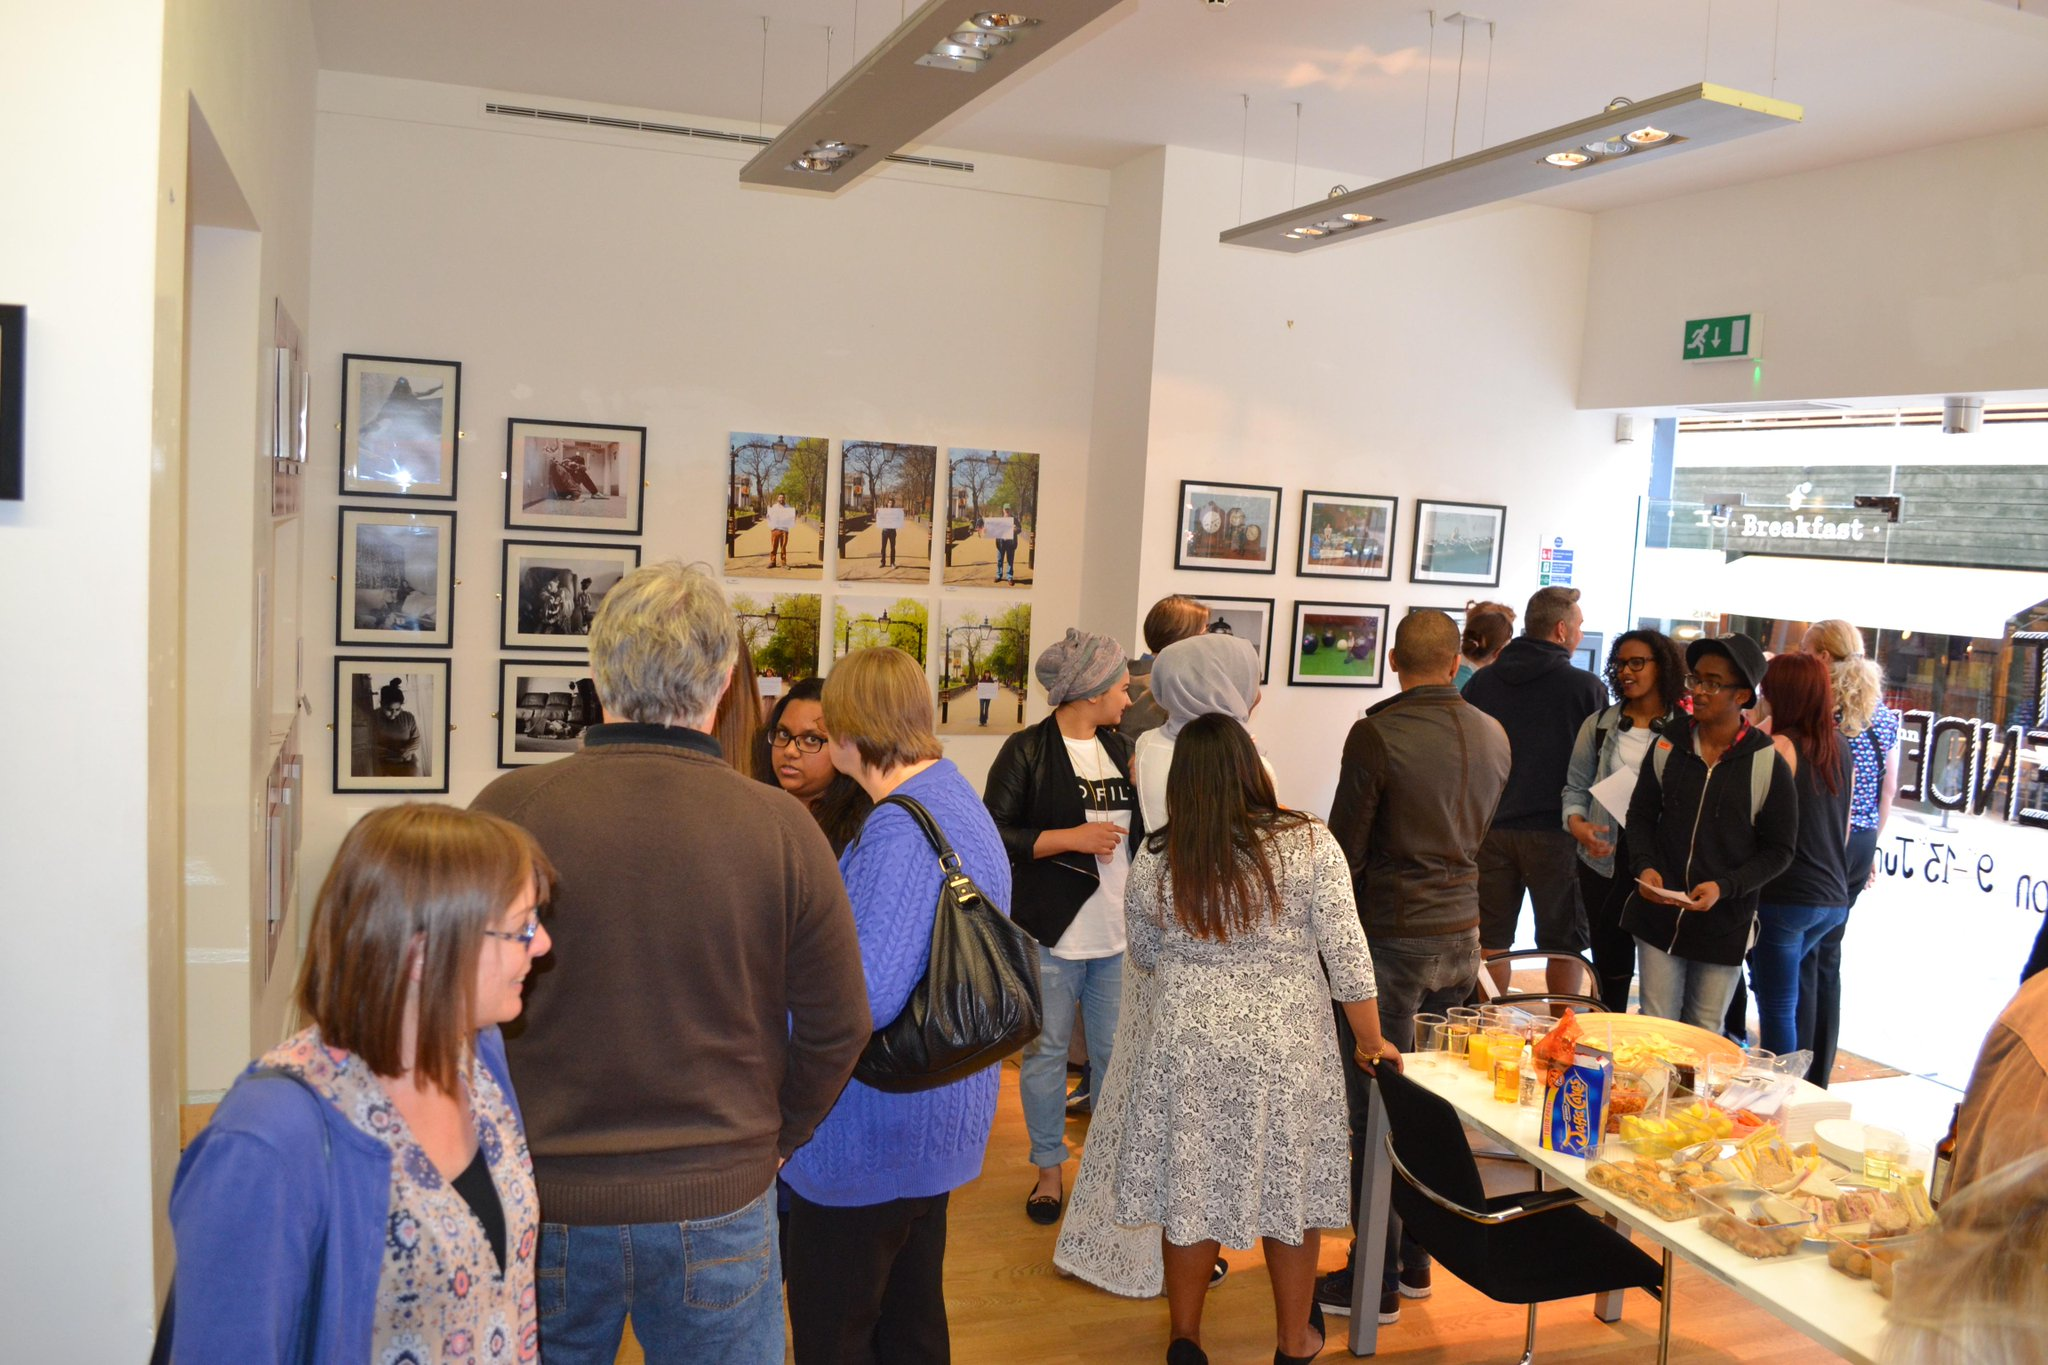 RT @wotspace: Fantastic turnout for #AMomentSuspended #Exhibition by 2nd year @leicestercoll Photography students 9-13th June. http://t.co/pgQjmegwVP